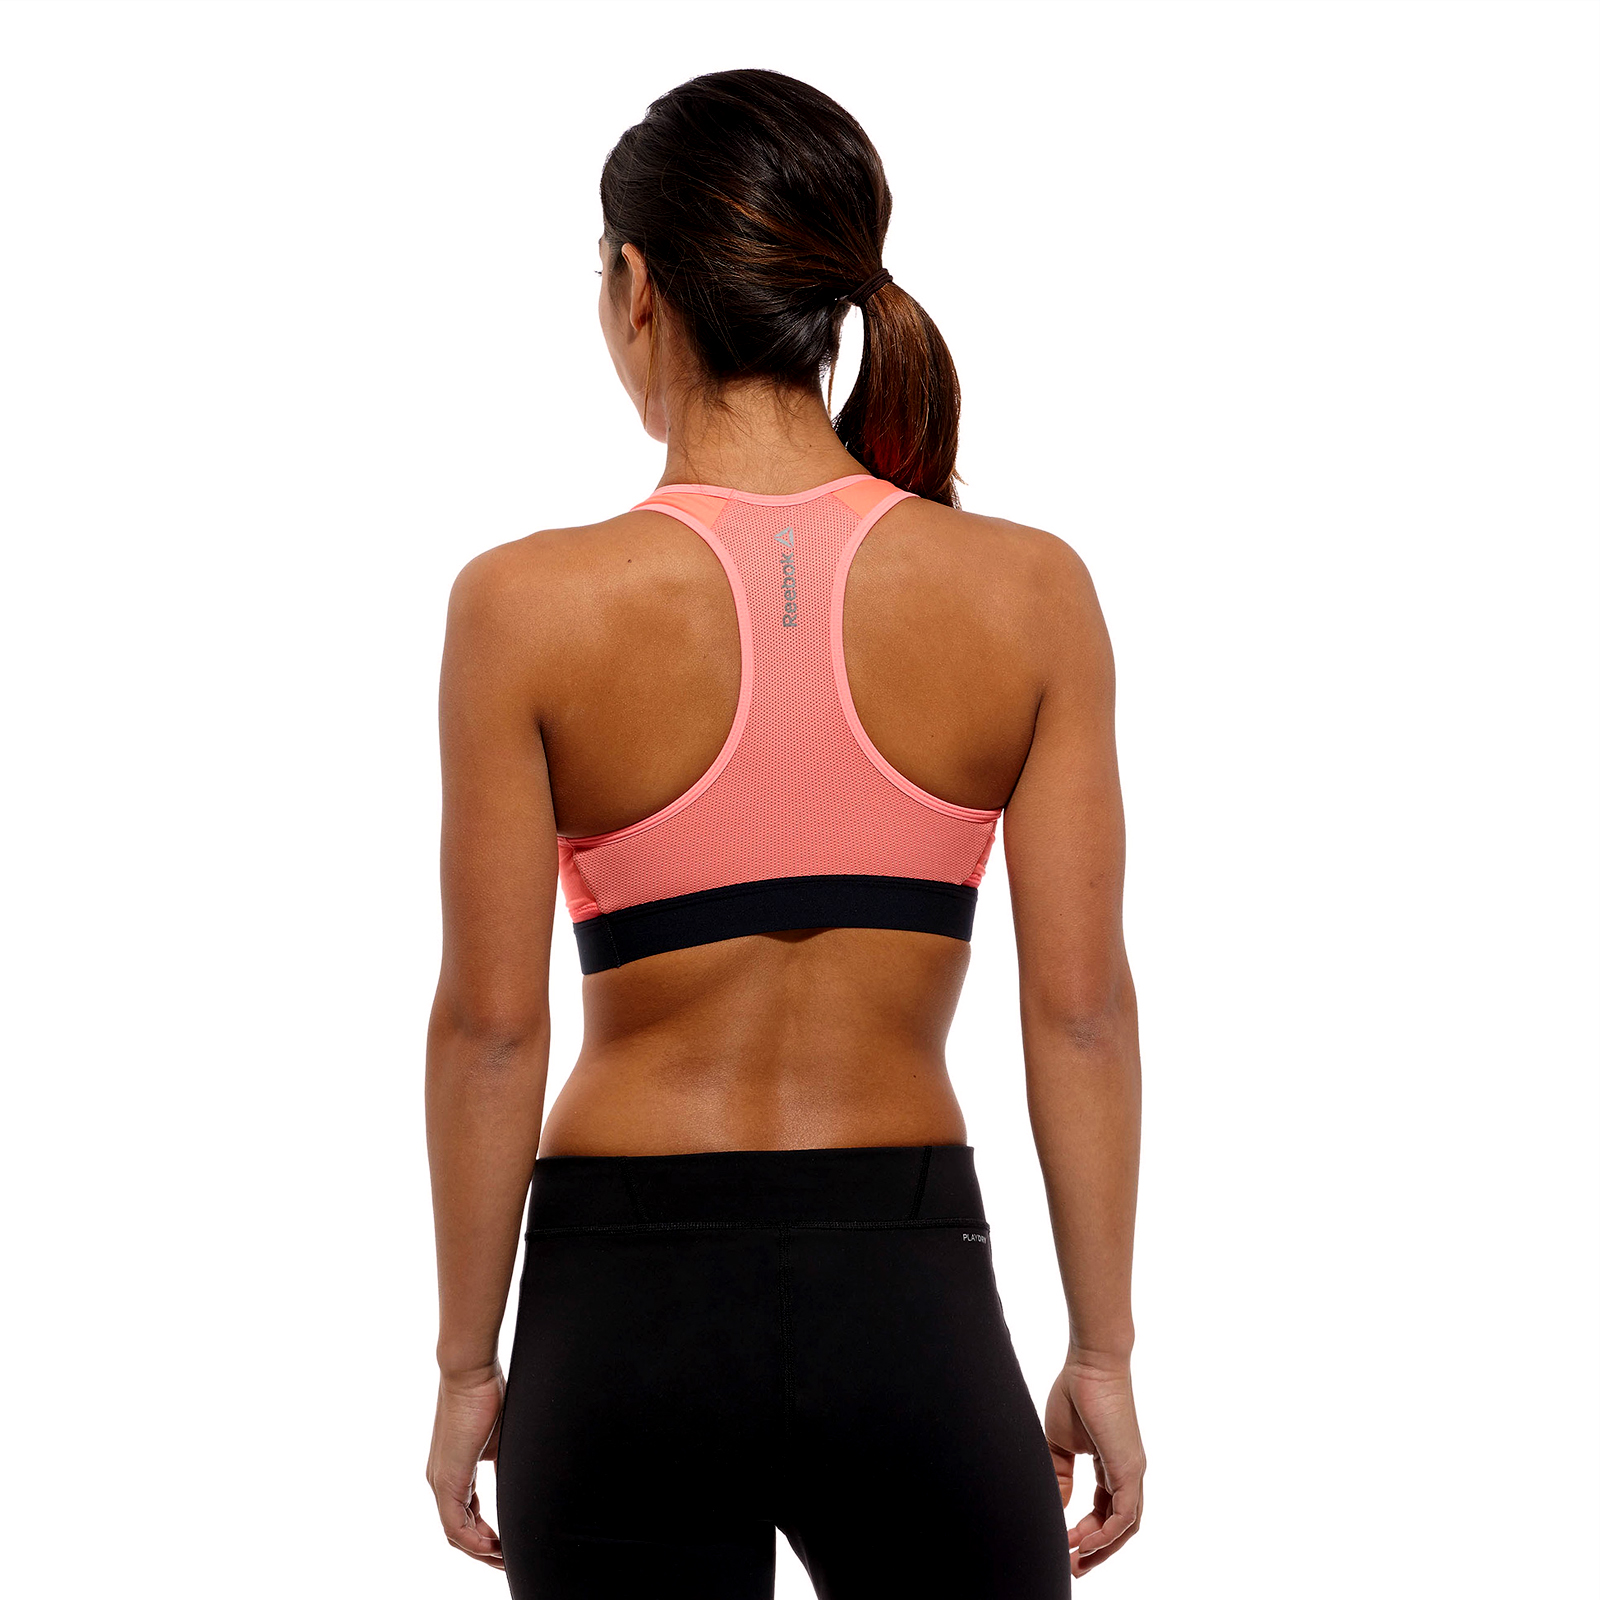 Reebok One Series Womens Padded Training Sports Bra ...